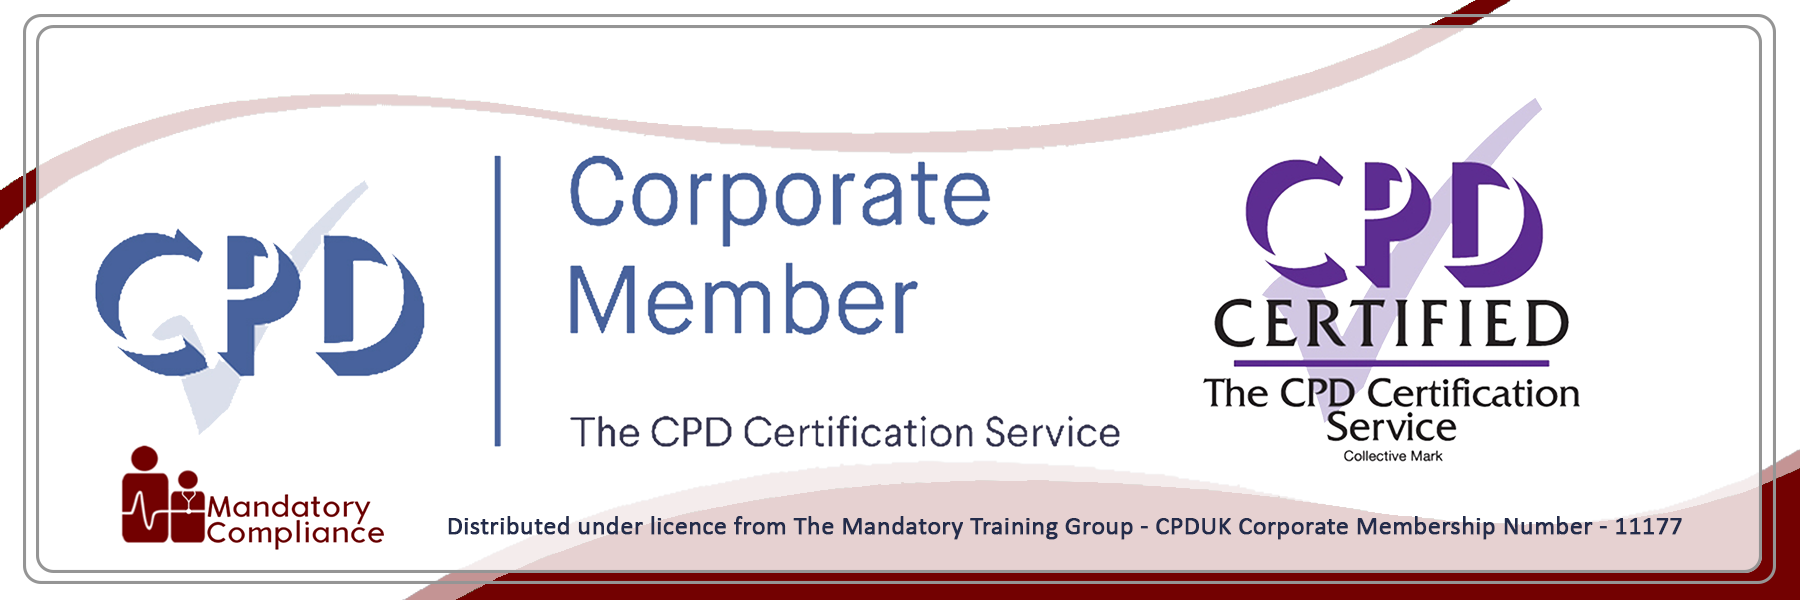 Anger Management - Online Training Course - CPDUK Accredited - Mandatory Compliance UK -